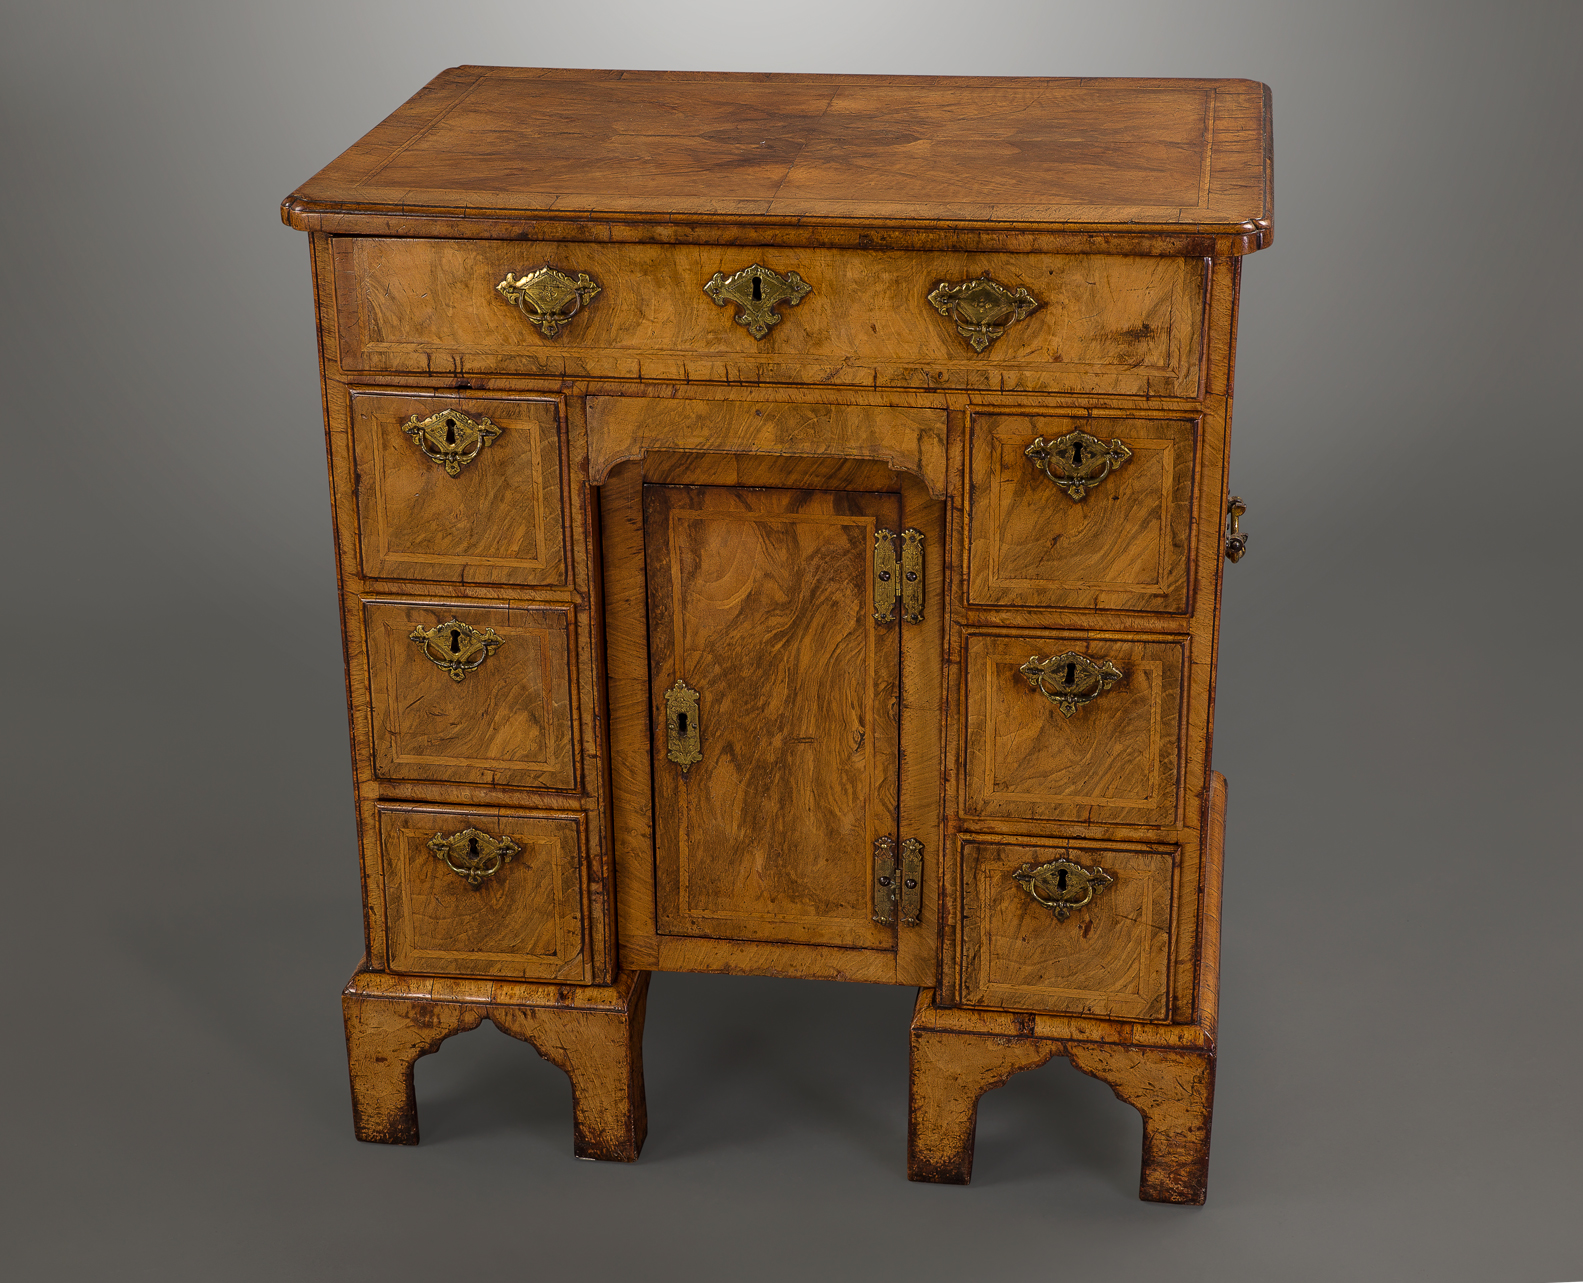 ... Fine and Important George I Walnut Kneehole Desk ... - Fine And Important George I Walnut Kneehole Desk Michael Pashby